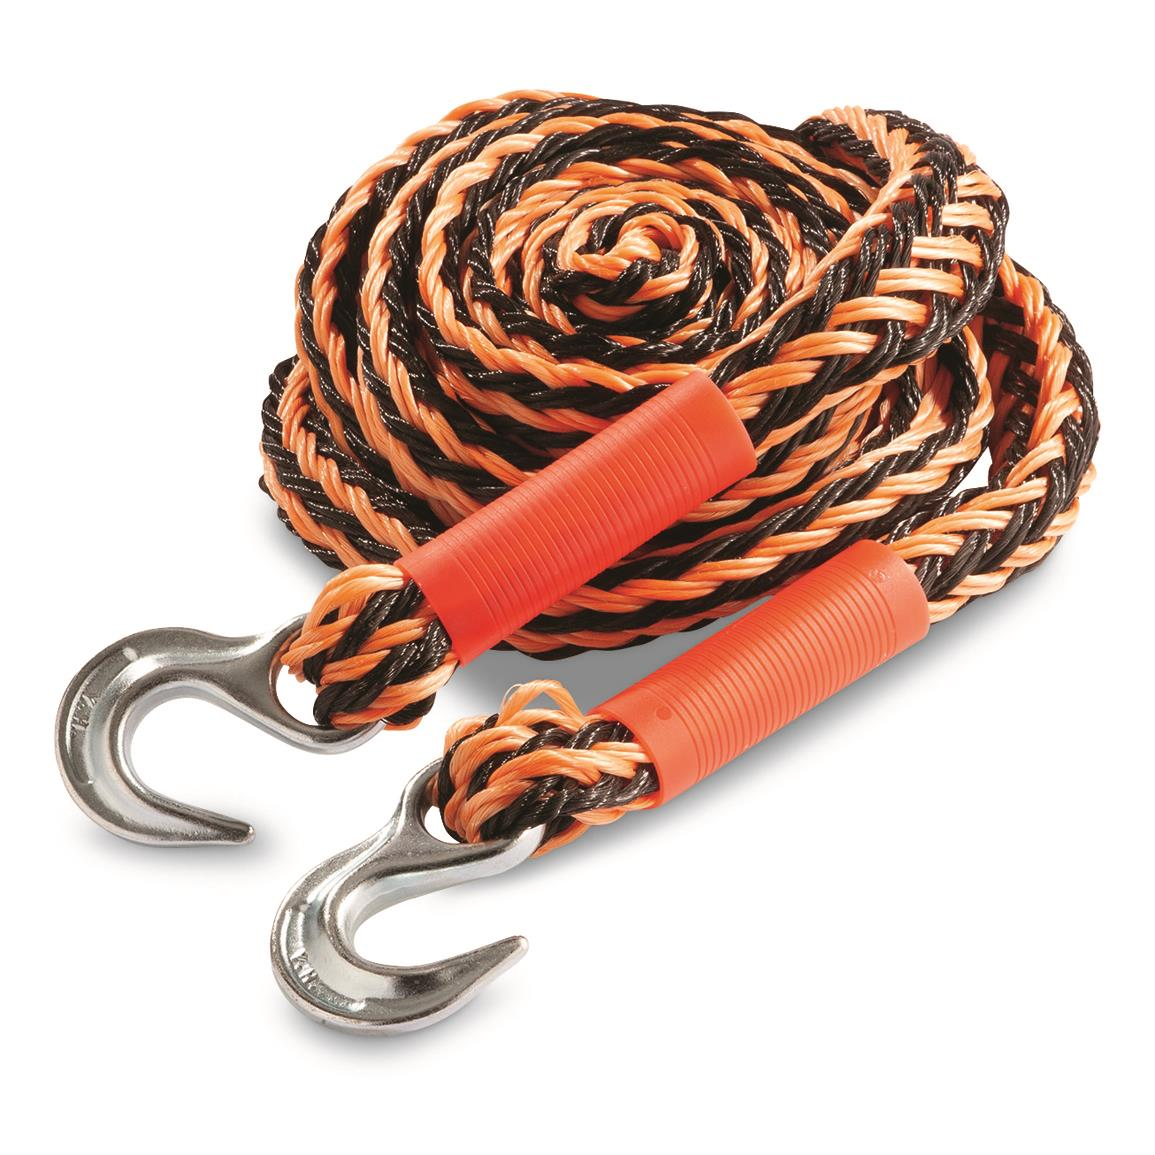 "Tow Rope - 7/8"" X 20', 10,000-lb."